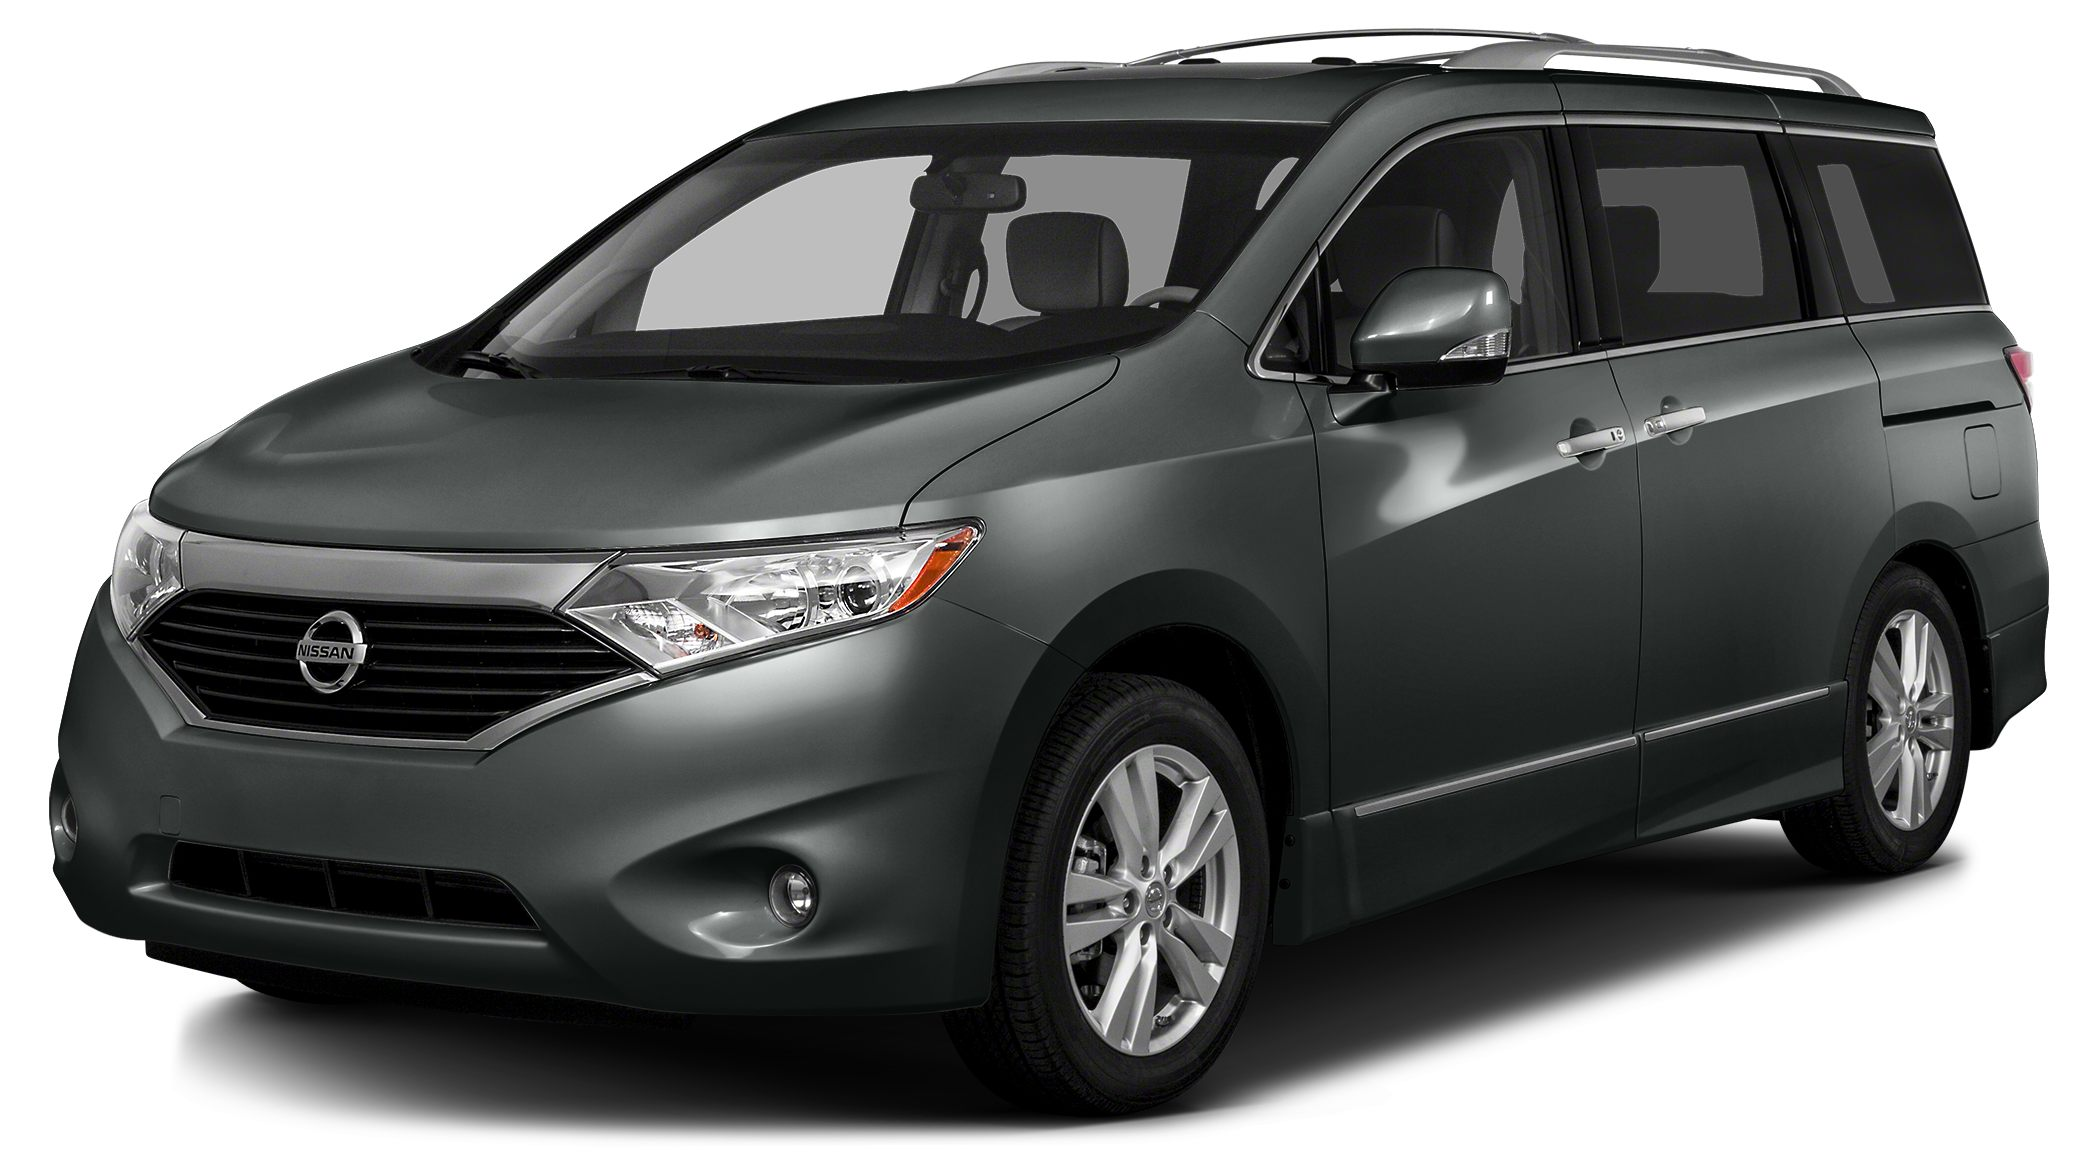 2015 Nissan Quest SV OUR PRICESYoure probably wondering why our prices are so much lower than th